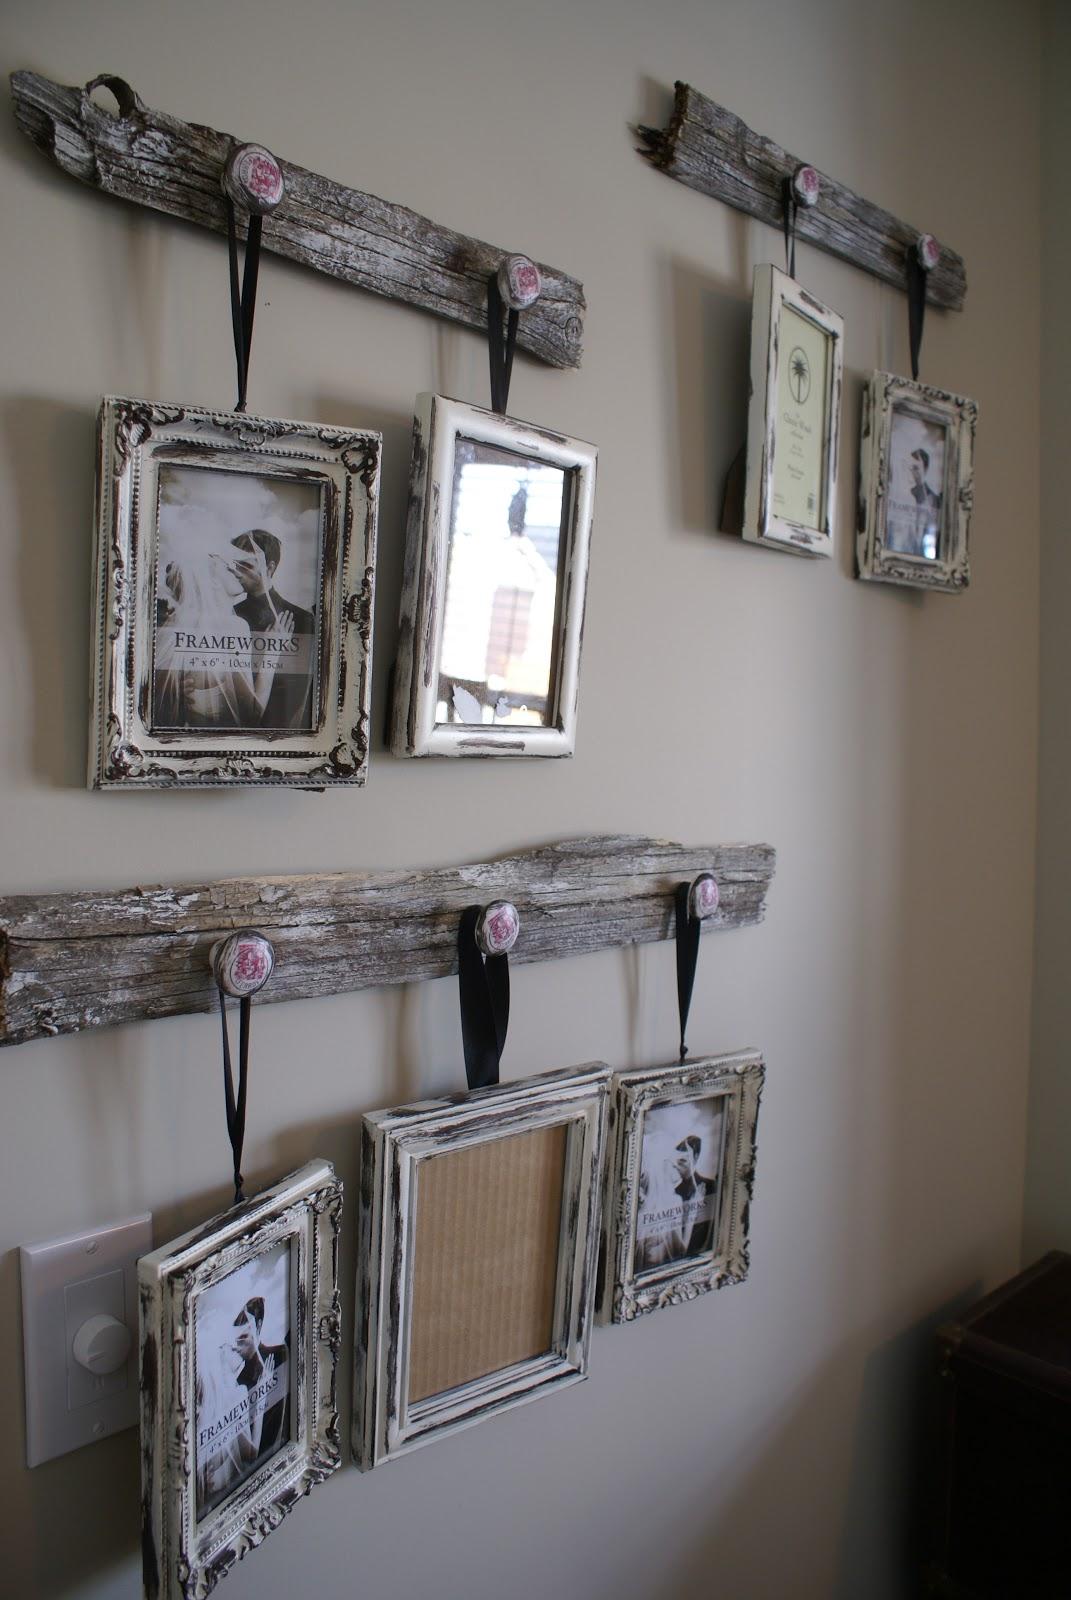 27 Best Rustic Wall Decor Ideas and Designs for 2017 on Pinterest Wall Decor  id=24930